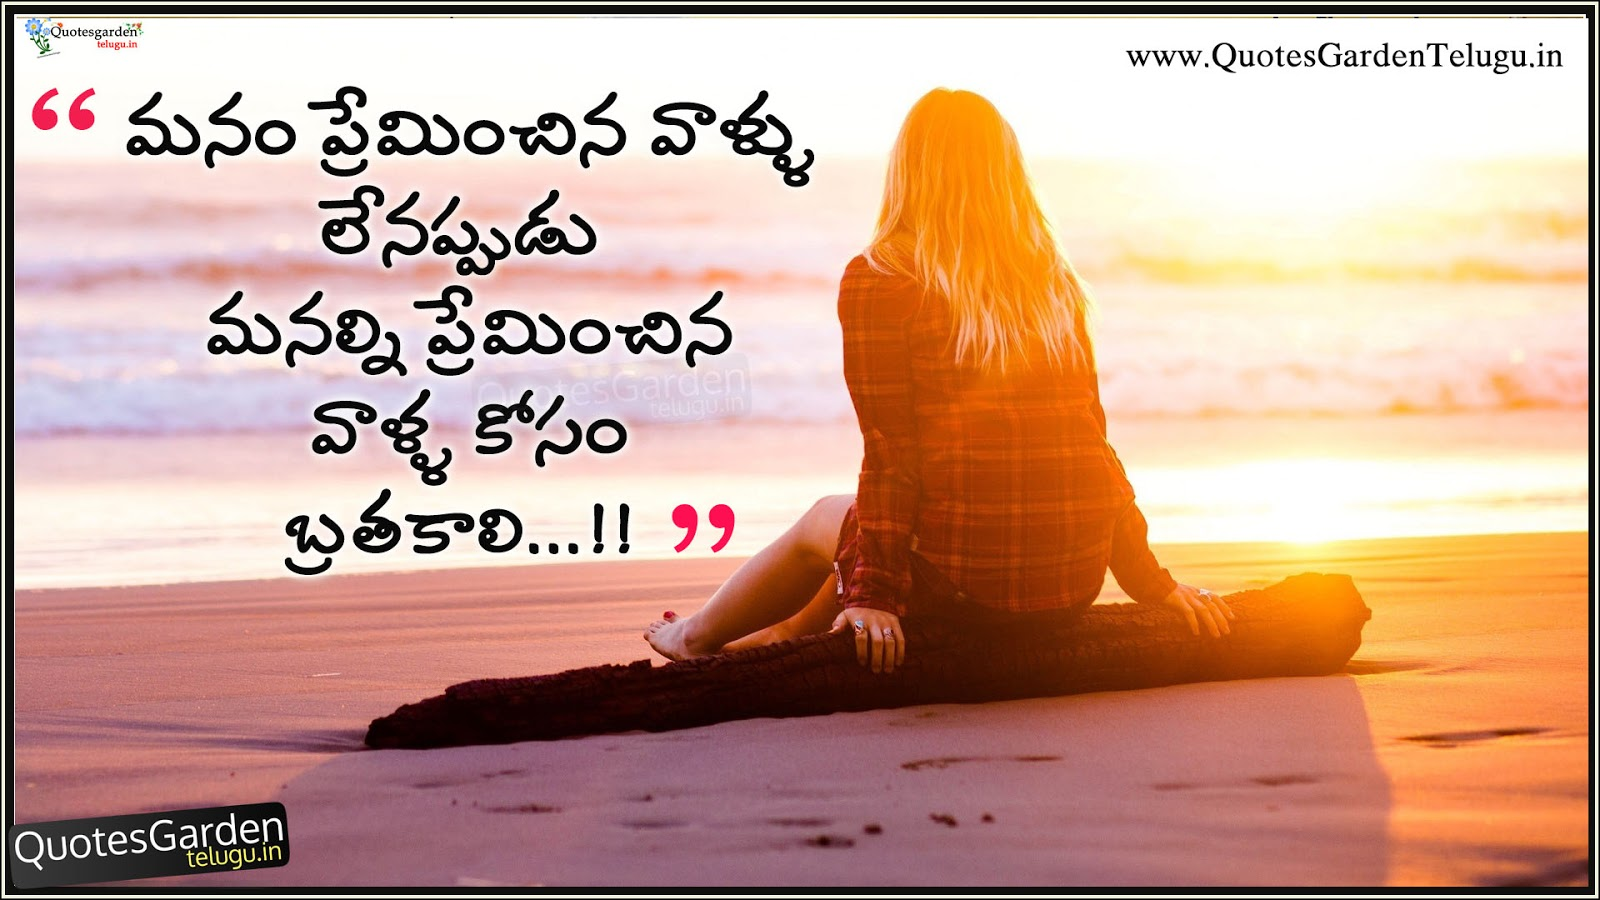 Heart touching Love quotes with beautiful images